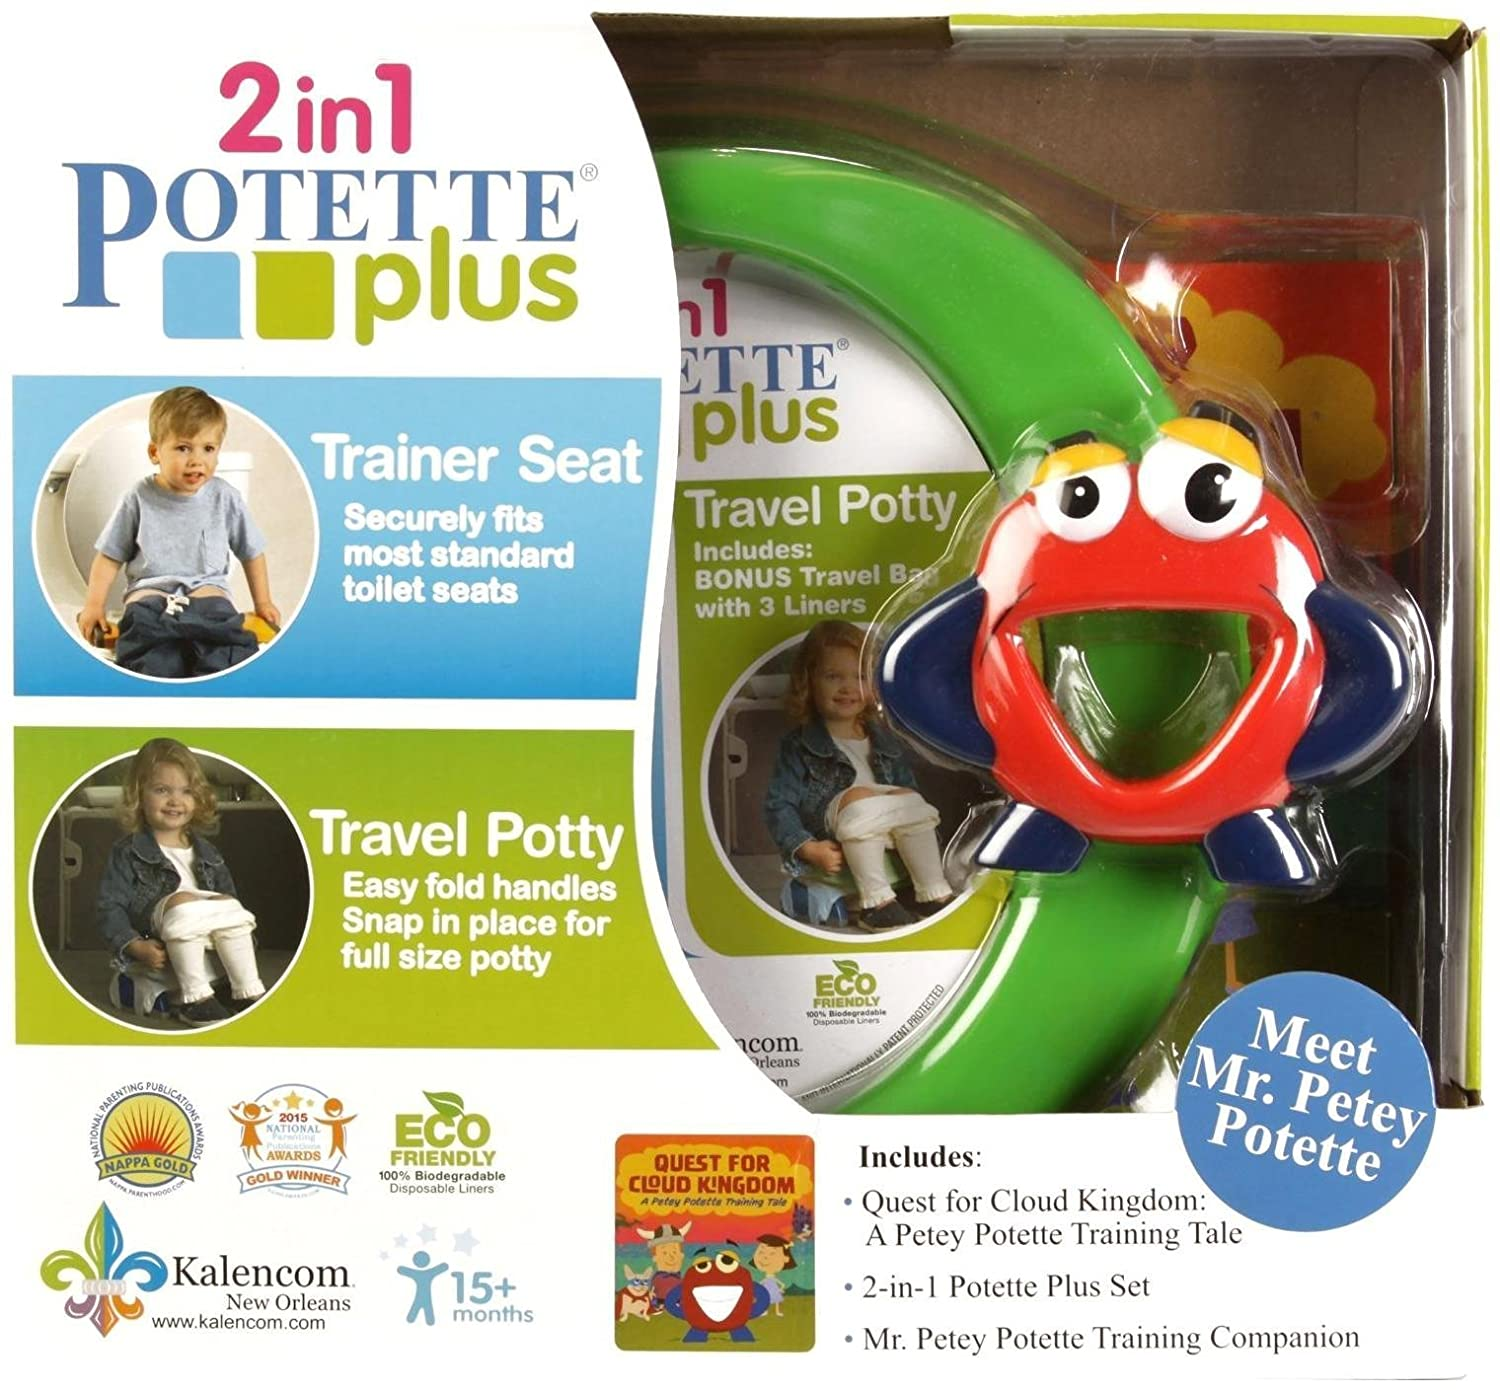 Biodegradable Liner Bags Only for Small Child Toddler Potty Toilet Training Seat